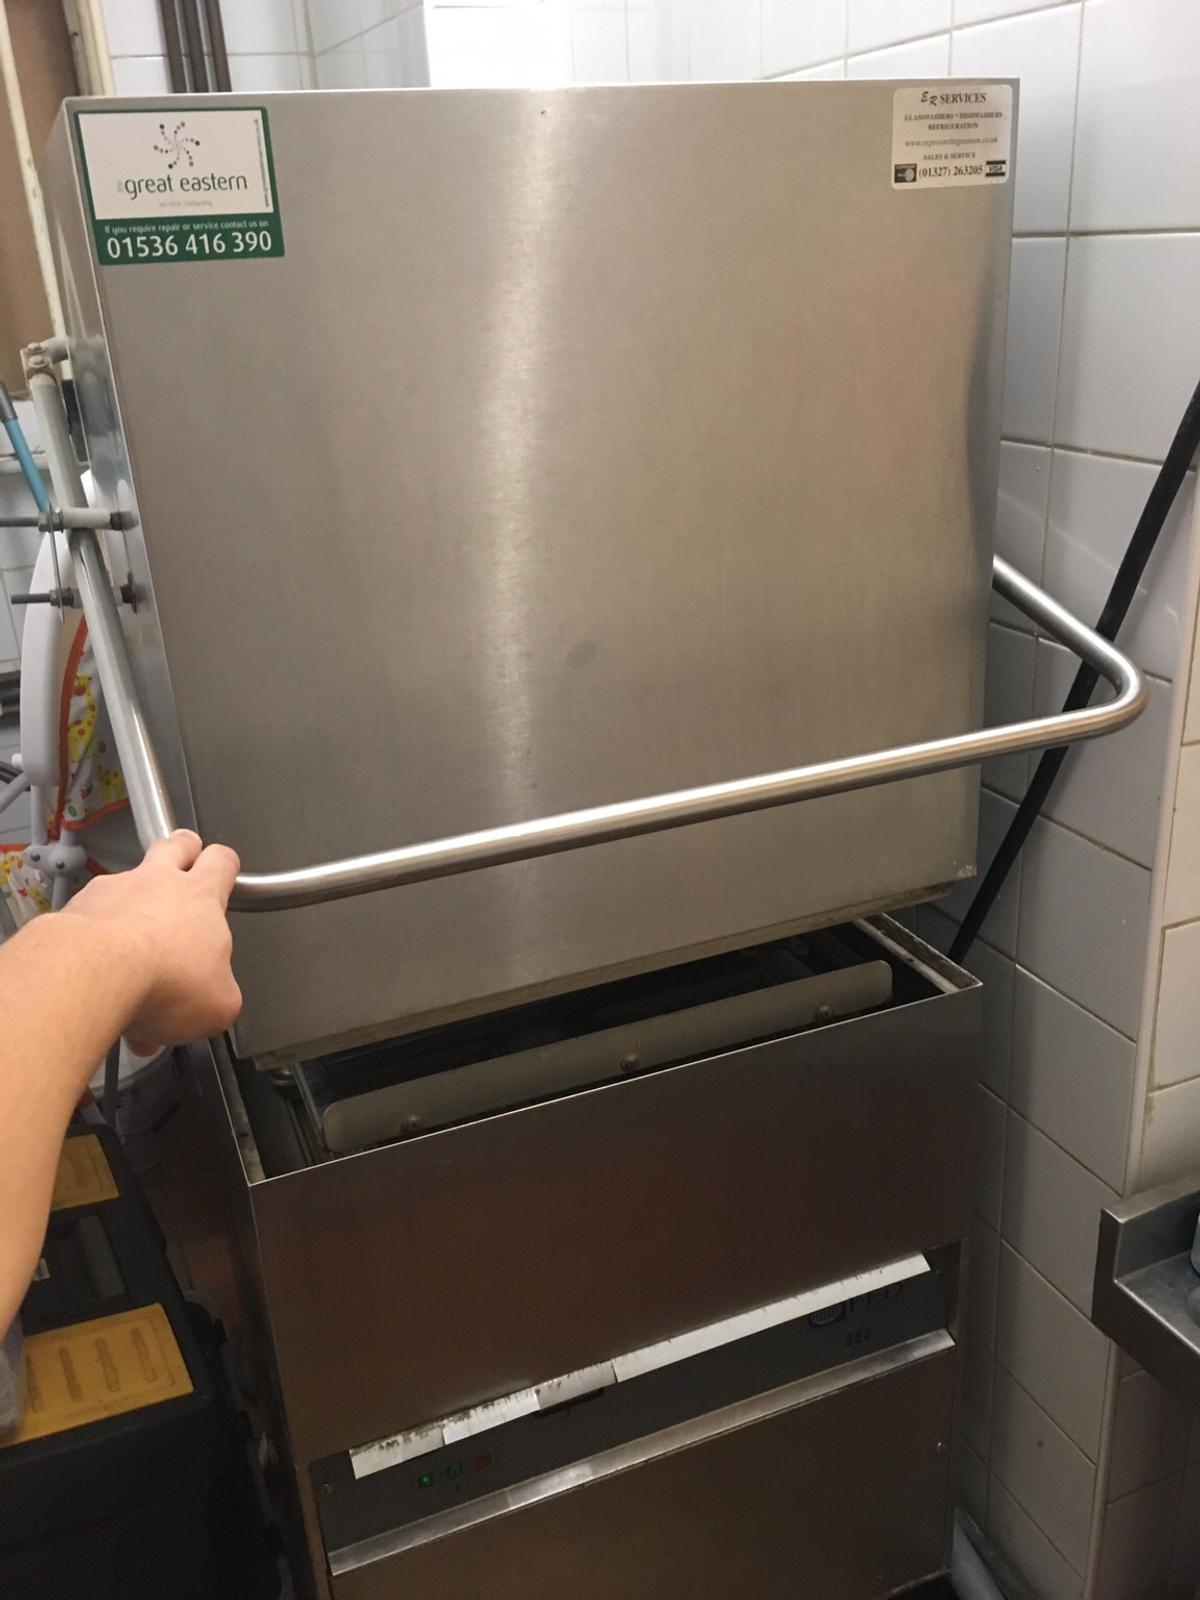 Second hand incredibly reliable and powerful dishwasher by FED. Still works perfectly after several years. Bit of wear and tear but dishes and glasses come out as clean as a whistle. Quick, powerful and reliable. High quality. Collection only.